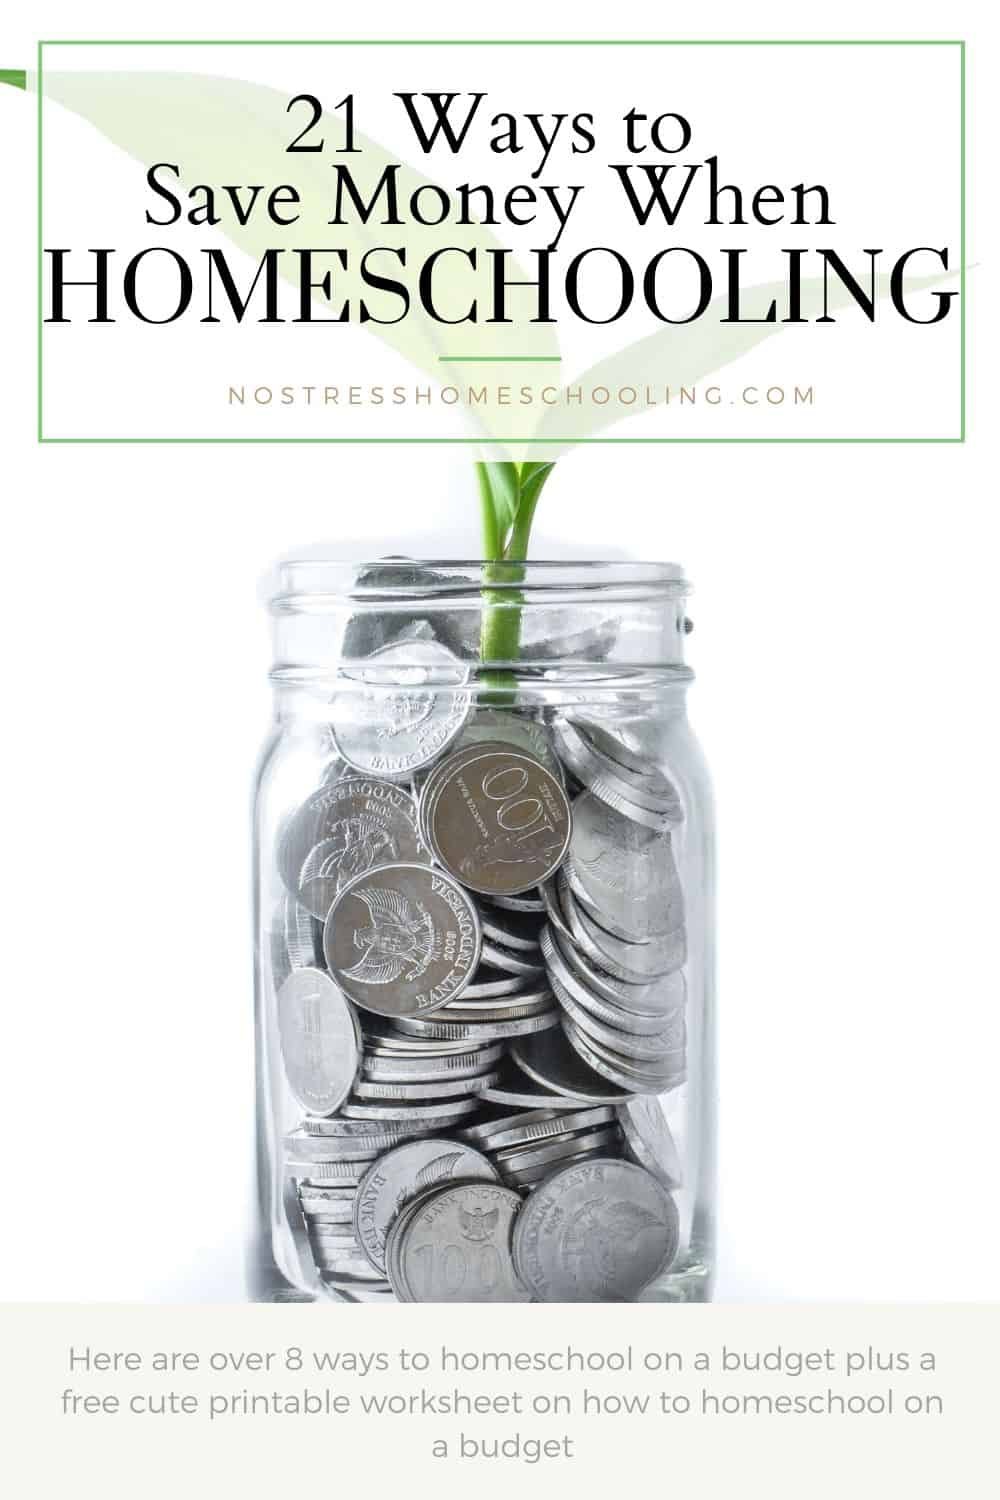 image for 21 ways to save money when homeschooling